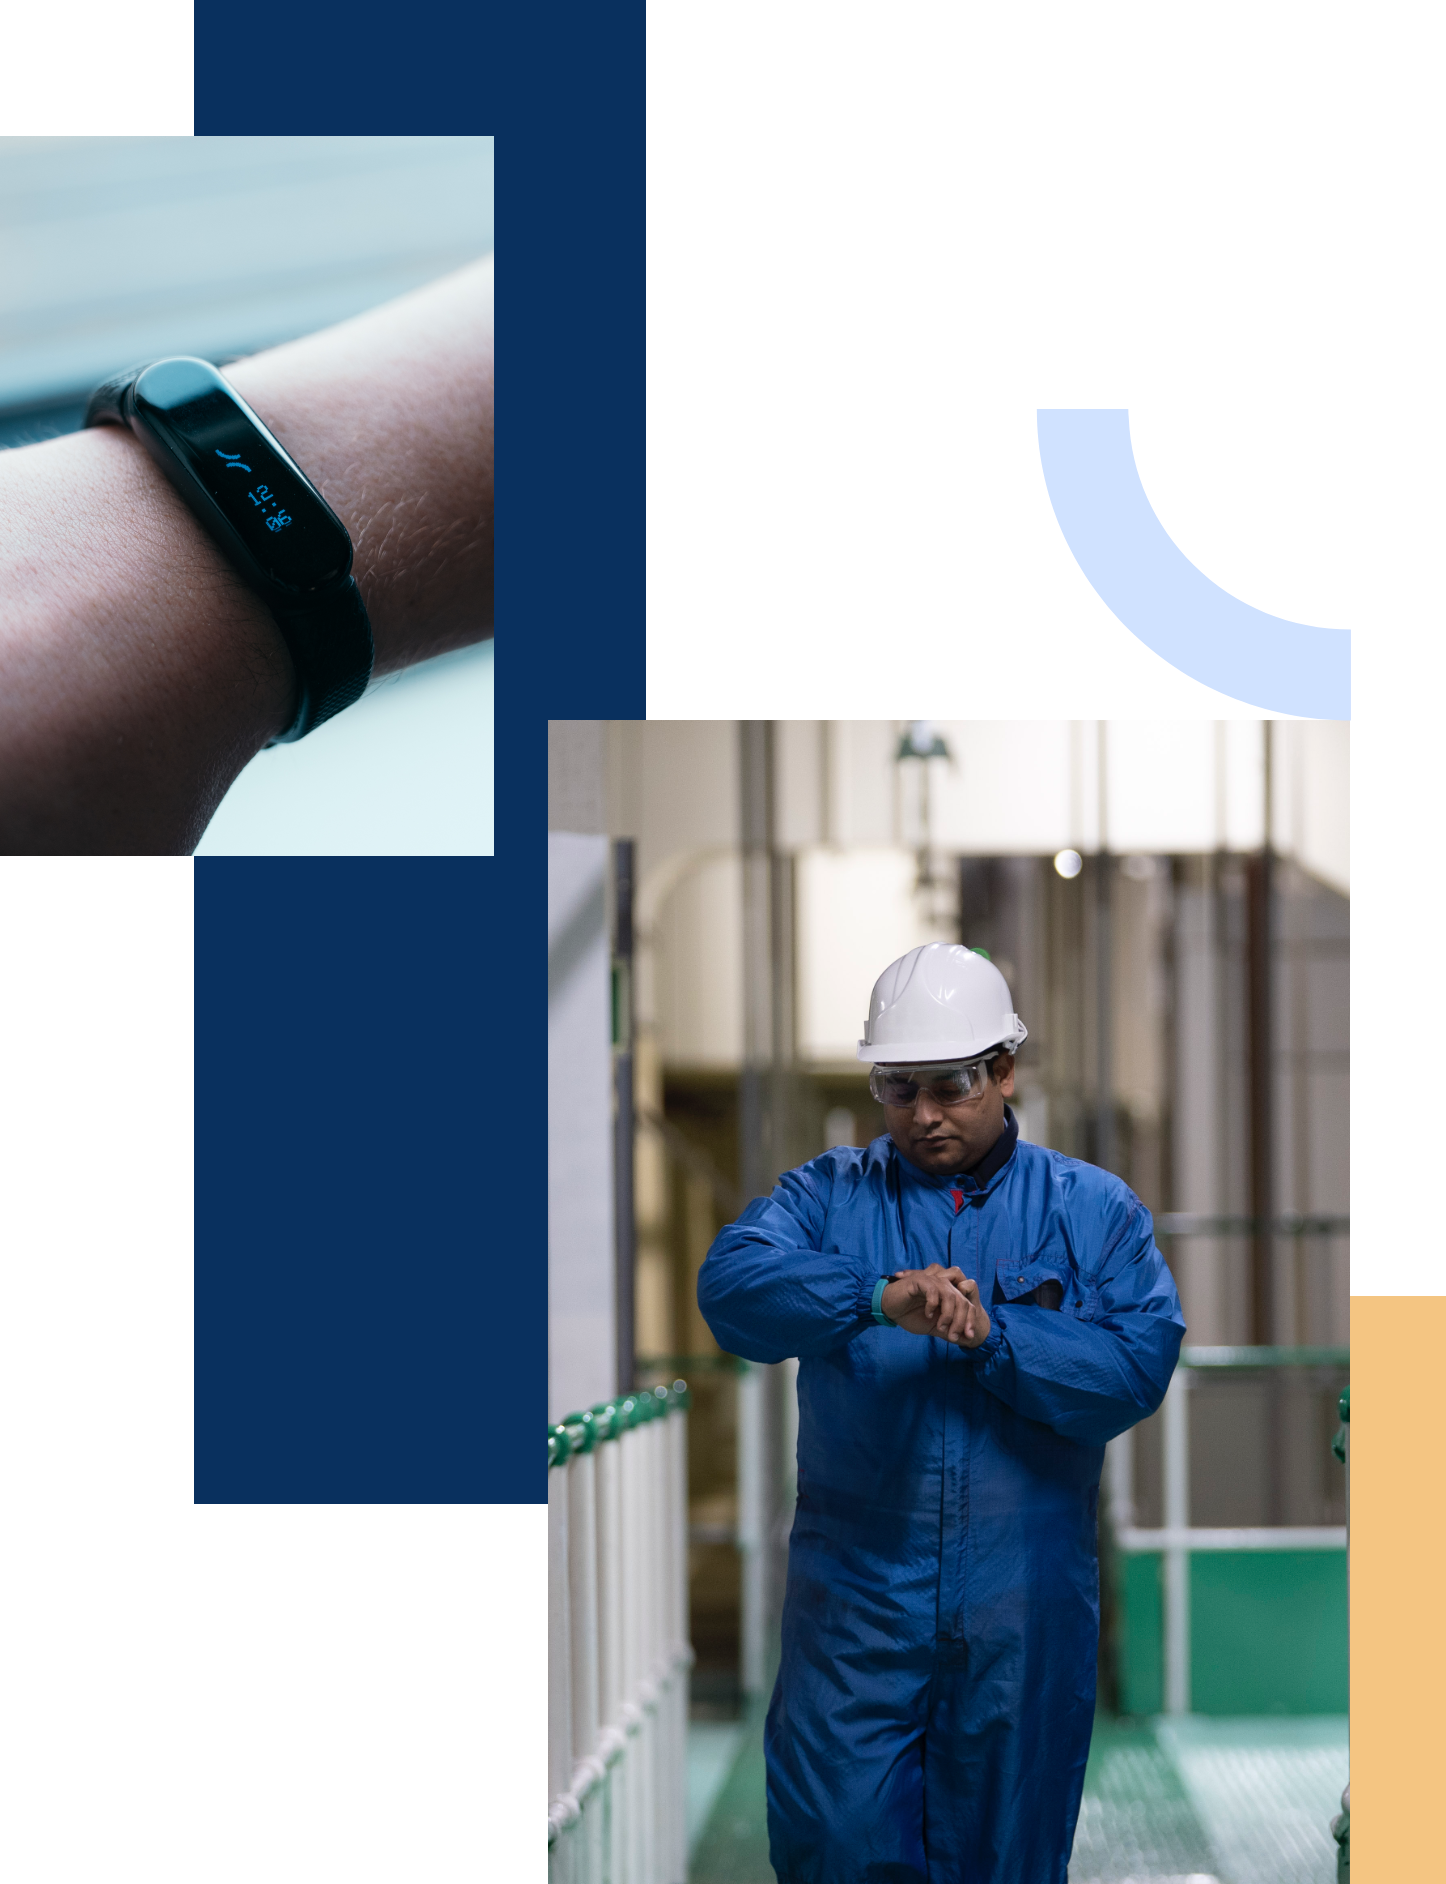 Tended's safety wearable showing the time